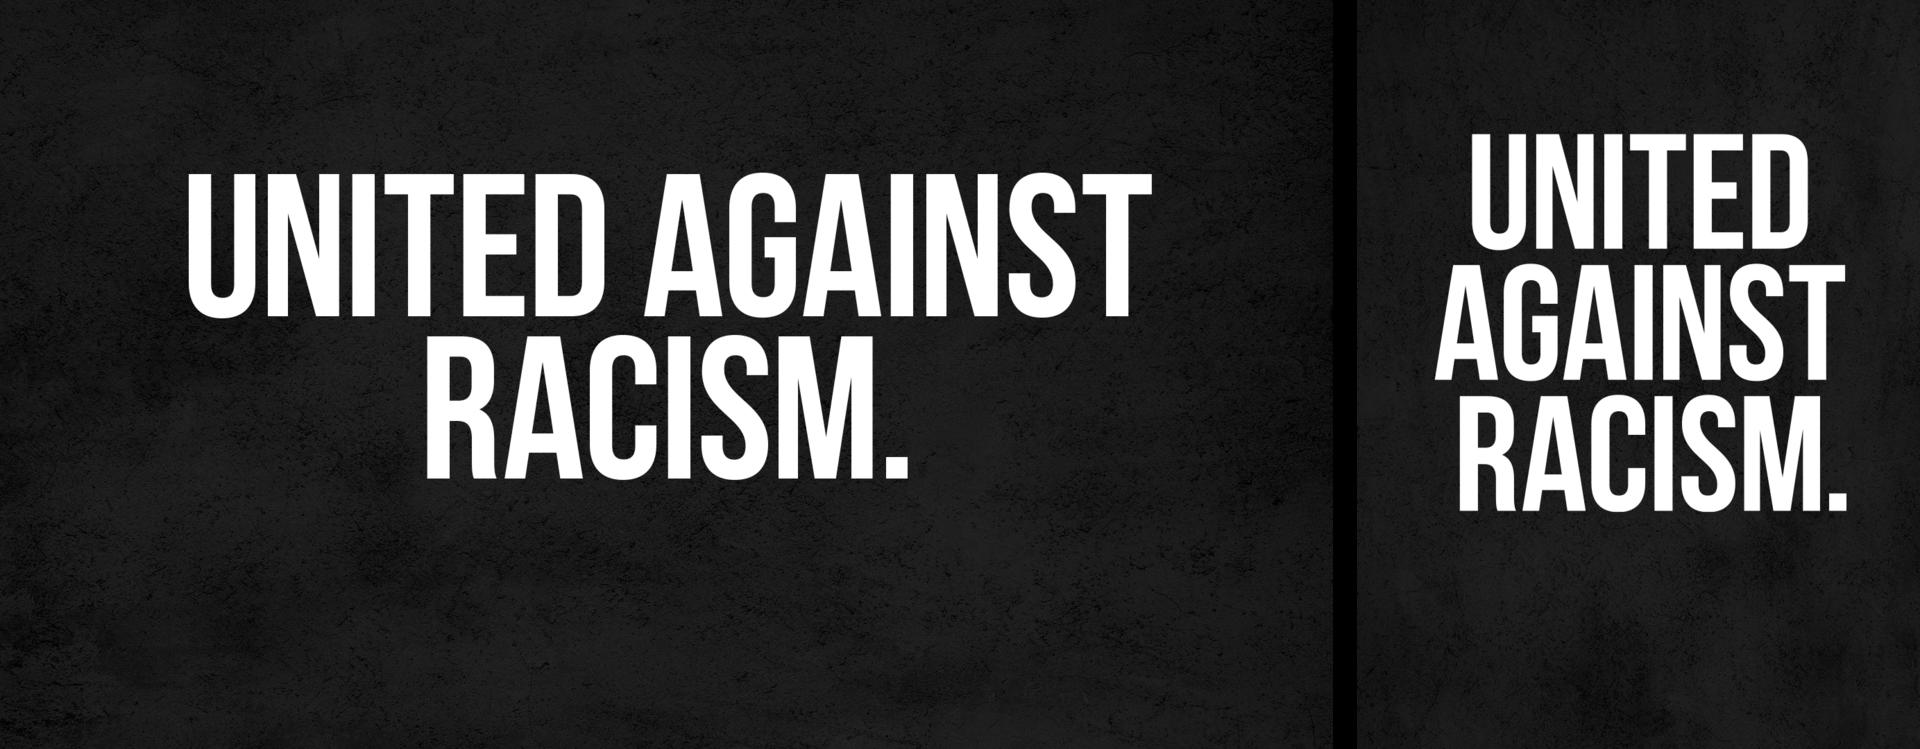 United against racism.